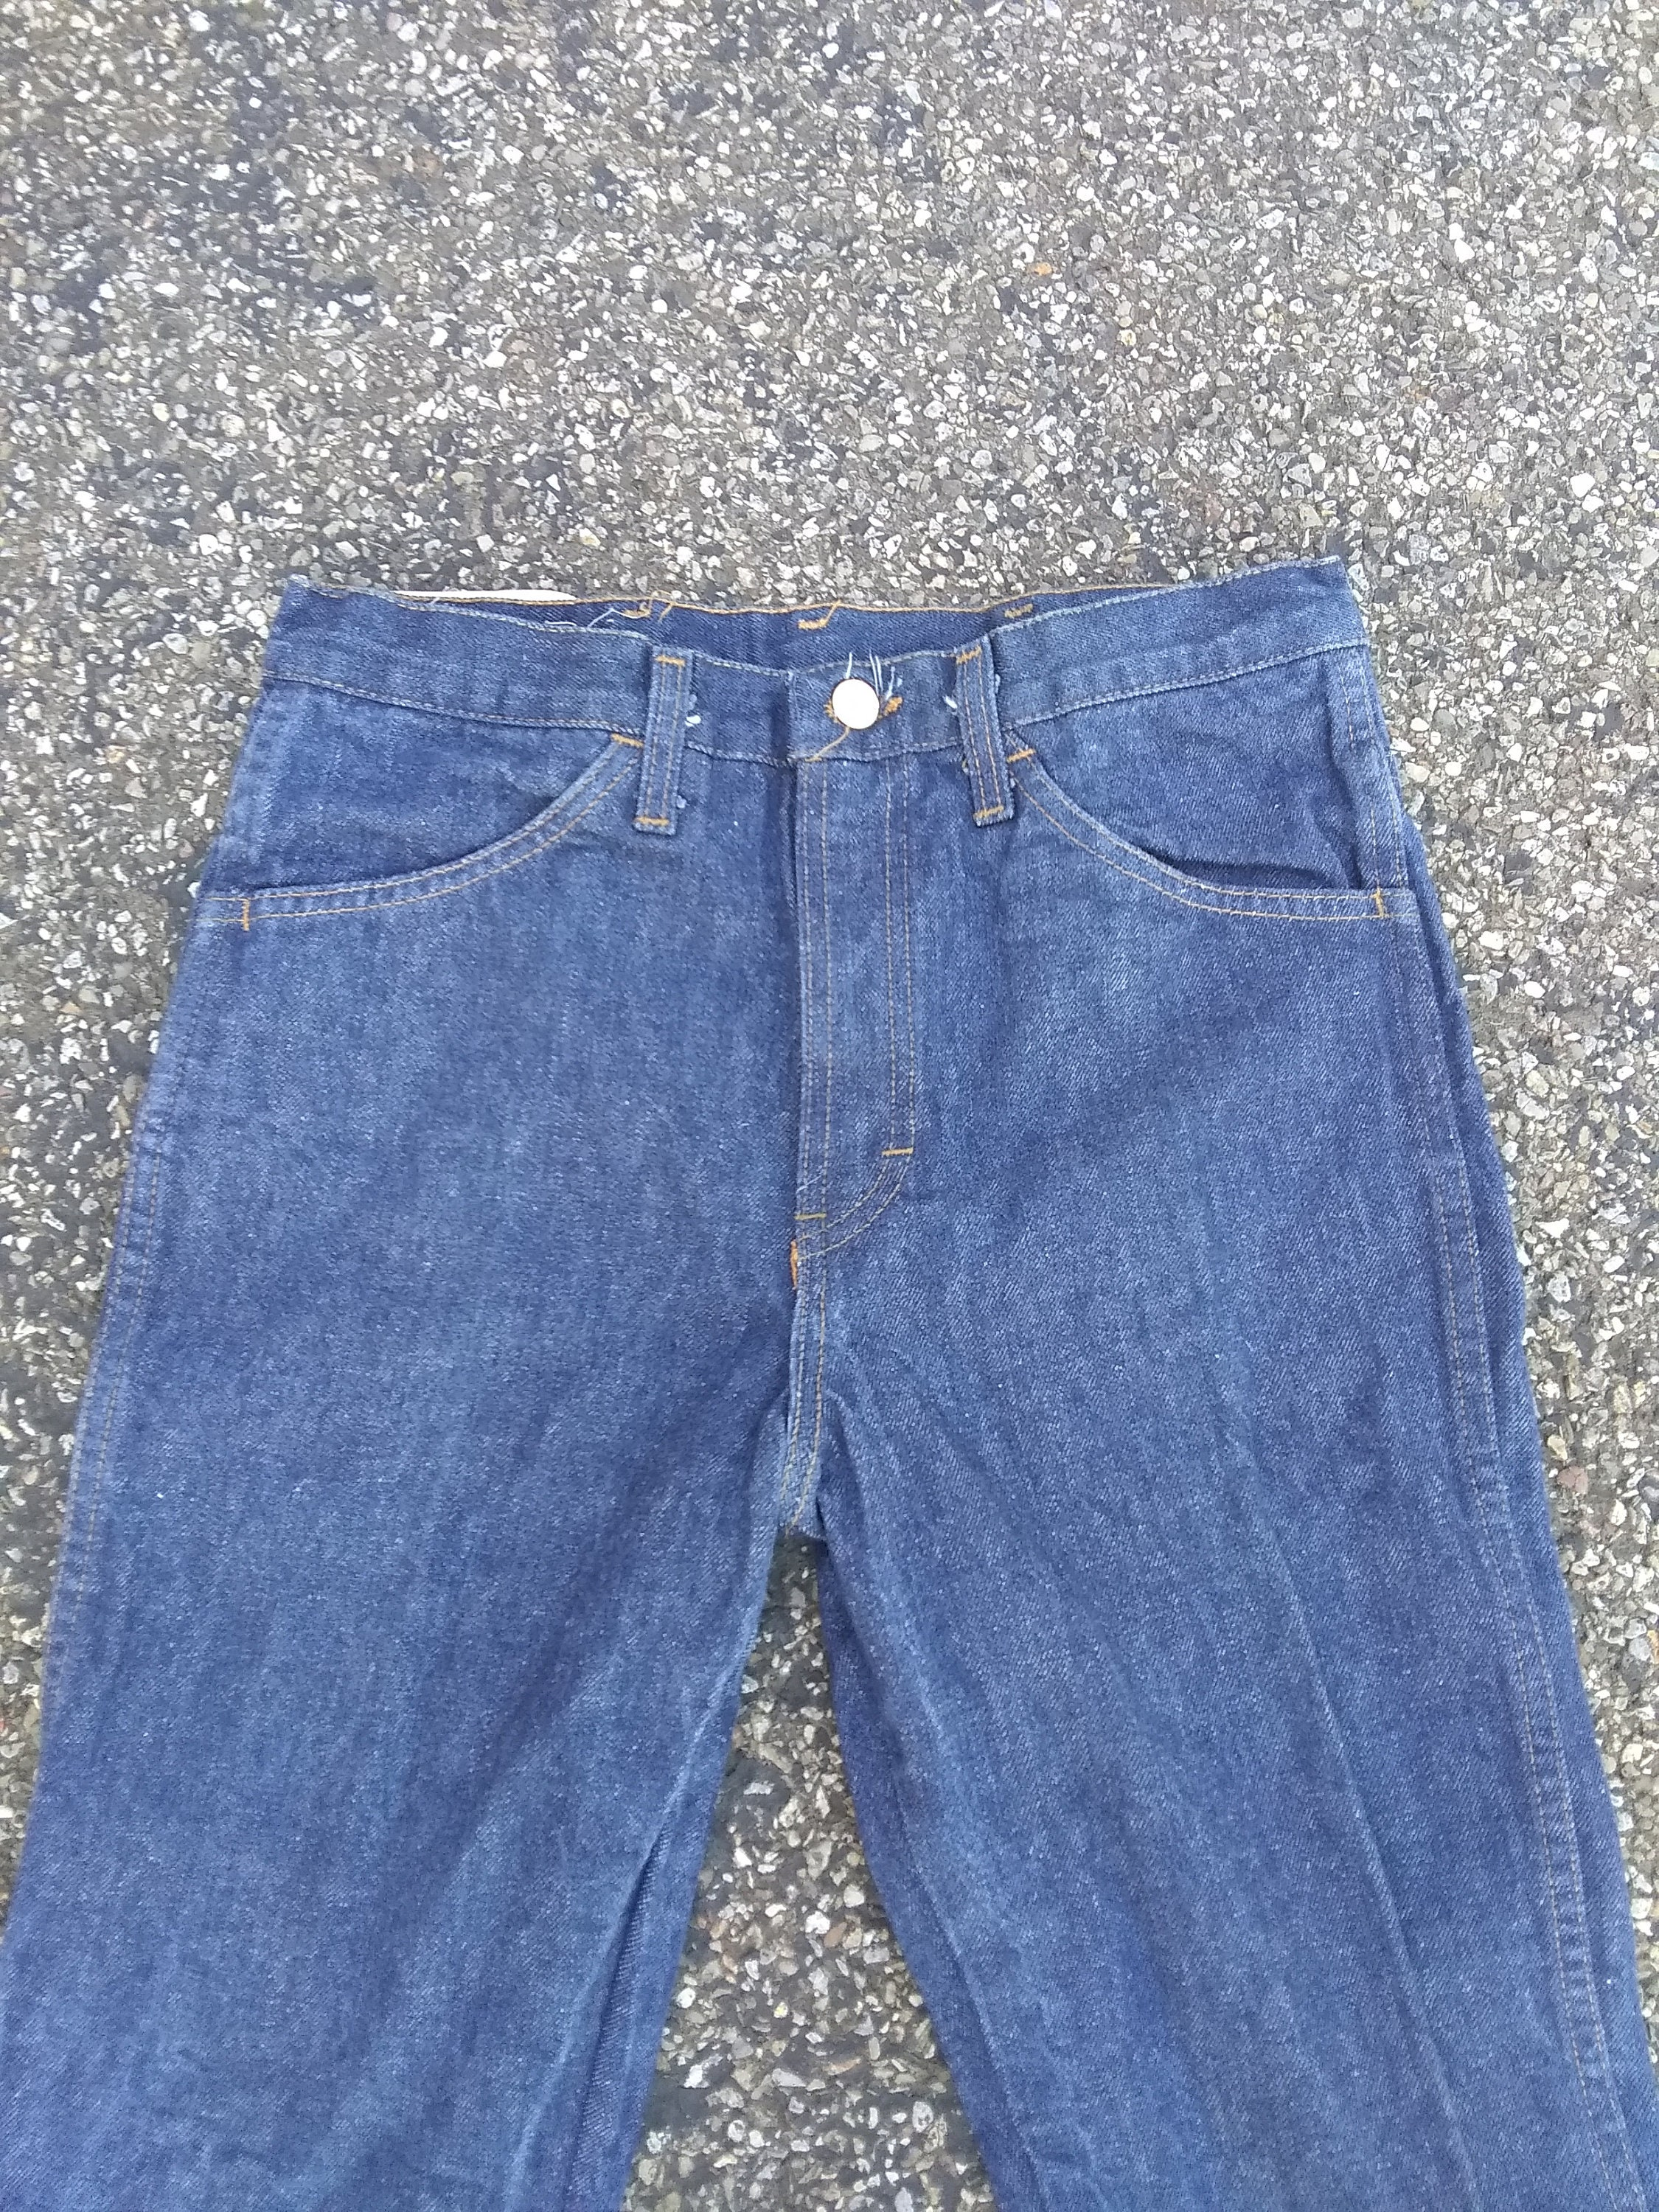 Vintage denim straight straight straight leg jeans dark prewash jeans deadstock usa nuevo old 100 cotton  hombres  pick 1 1970 talon 42 wear t shirt shoe  botas  pants 5ea3ae